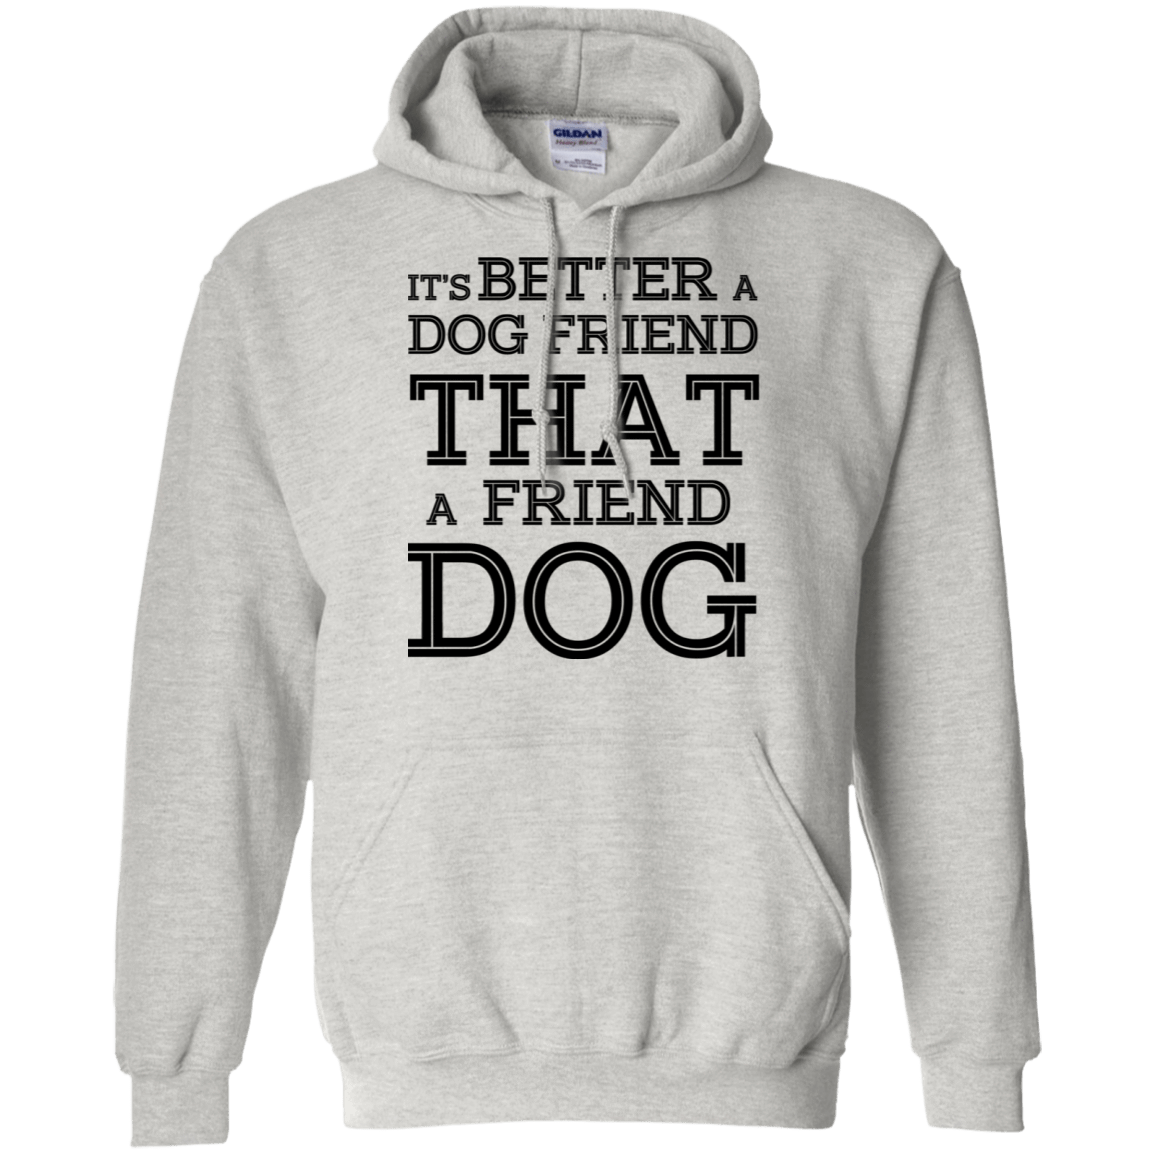 It's Better A Dog Friend That A Friend Dog 541-4748-73564857-23071 - Tee Ript